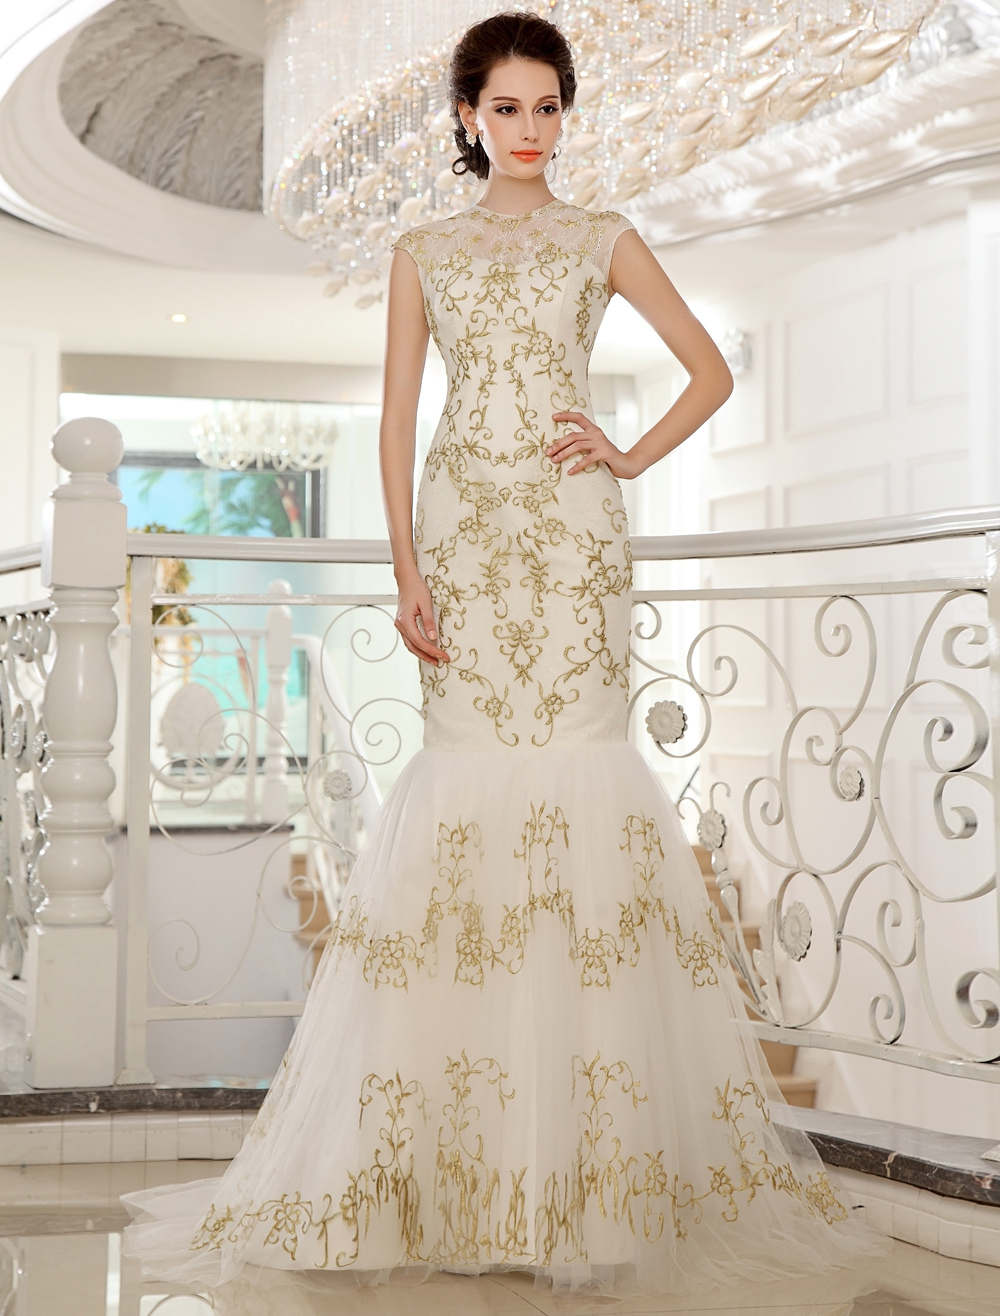 Sweep Jewel Neck Mermaid Embroidered Ivory Bridal Wedding Dress Milanoo